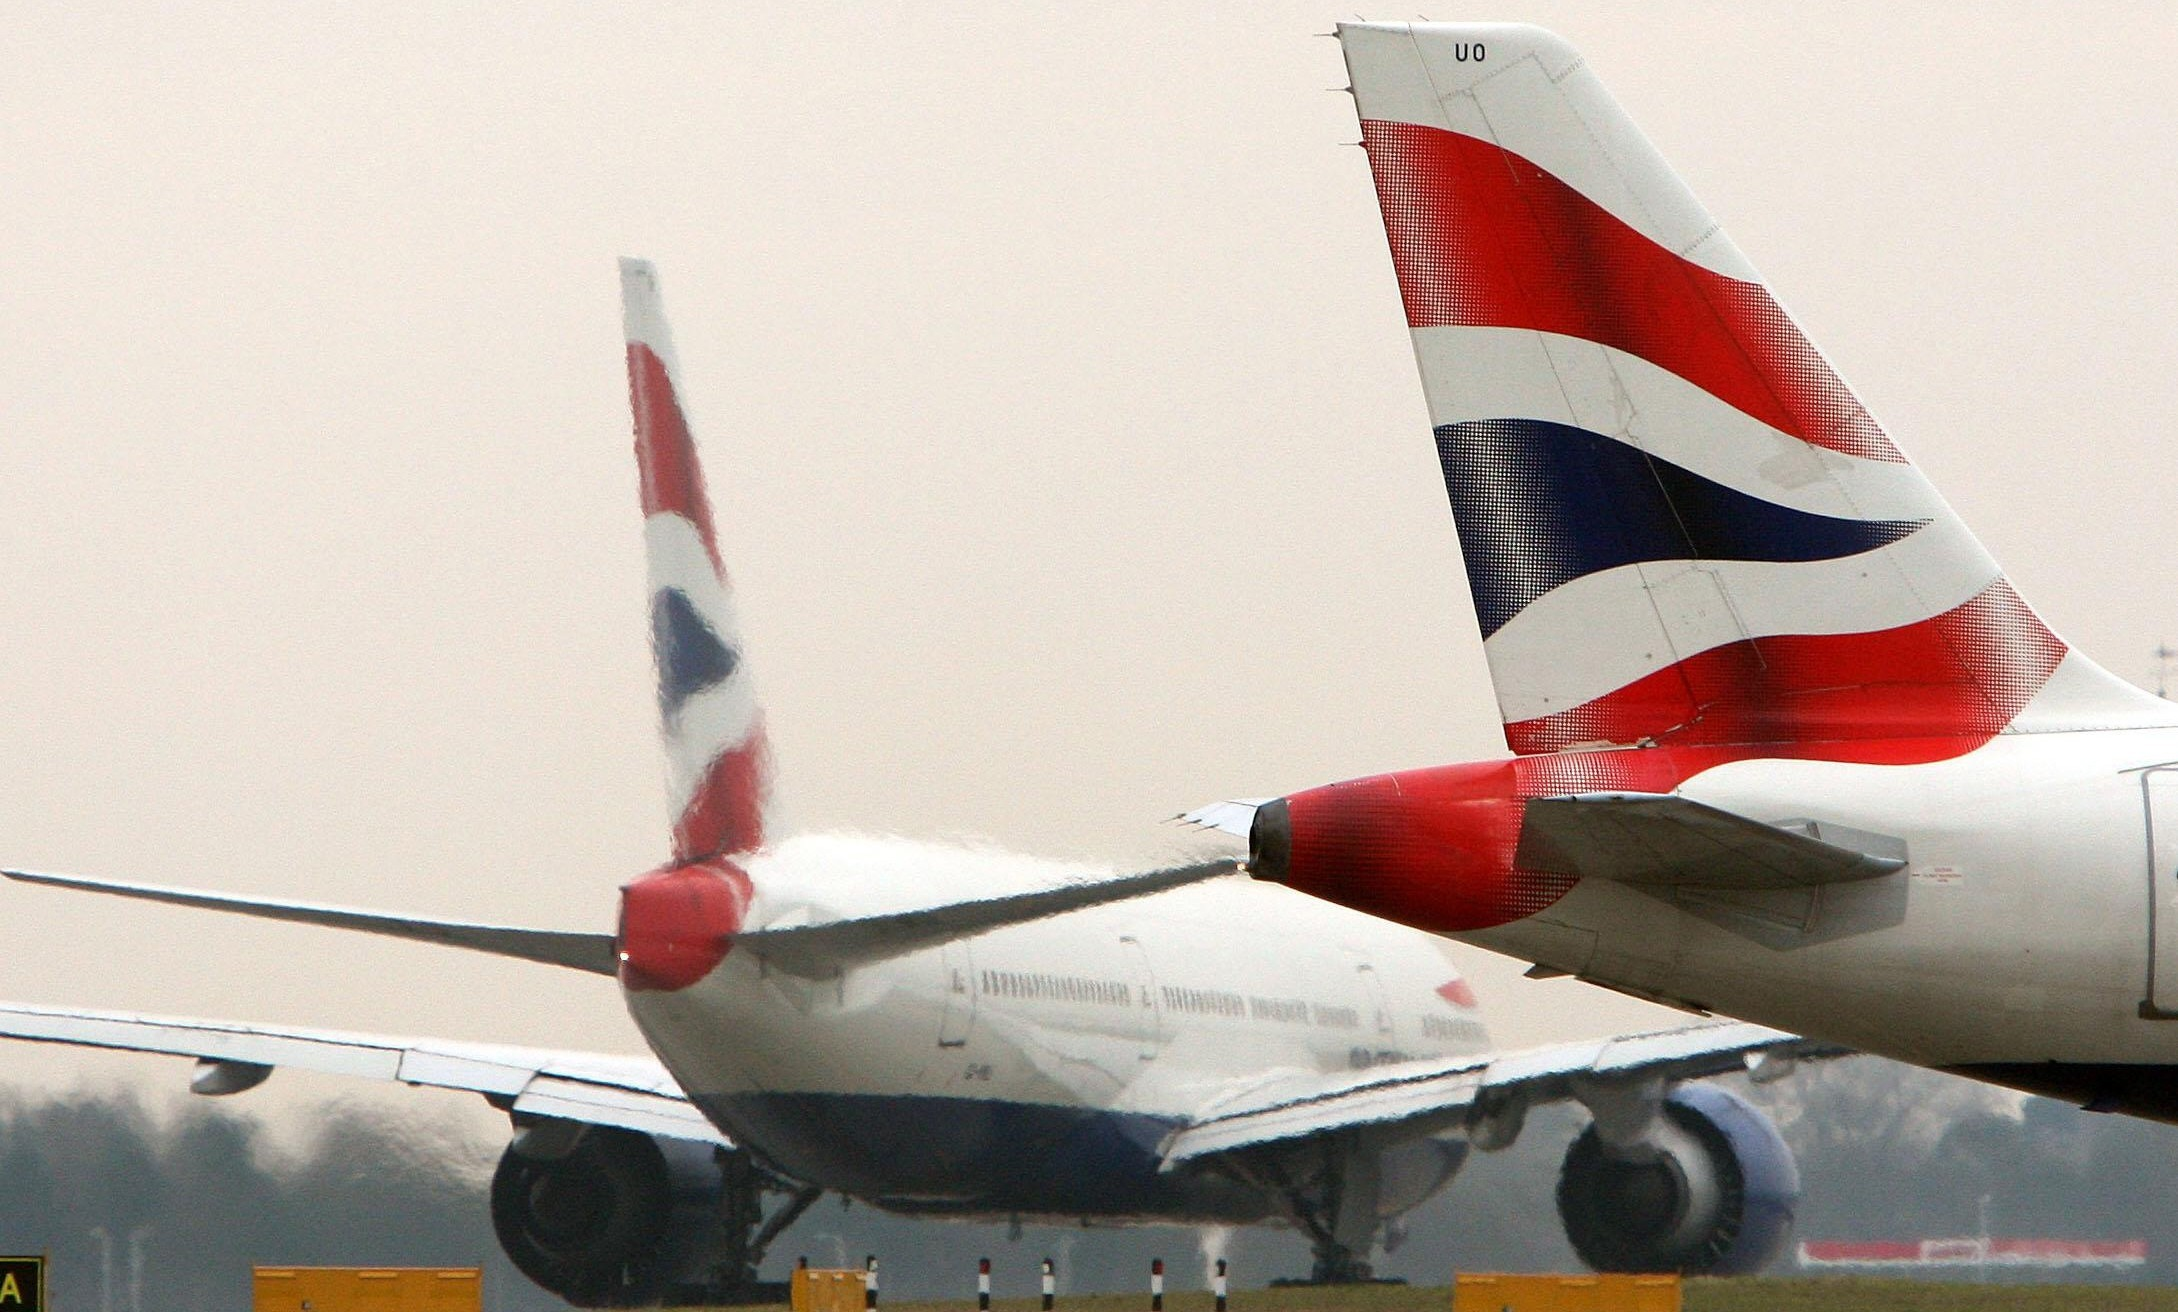 The Mayor of London has suggested Heathrow expansion will mean Aberdeen International Airport is cut off from the hub.